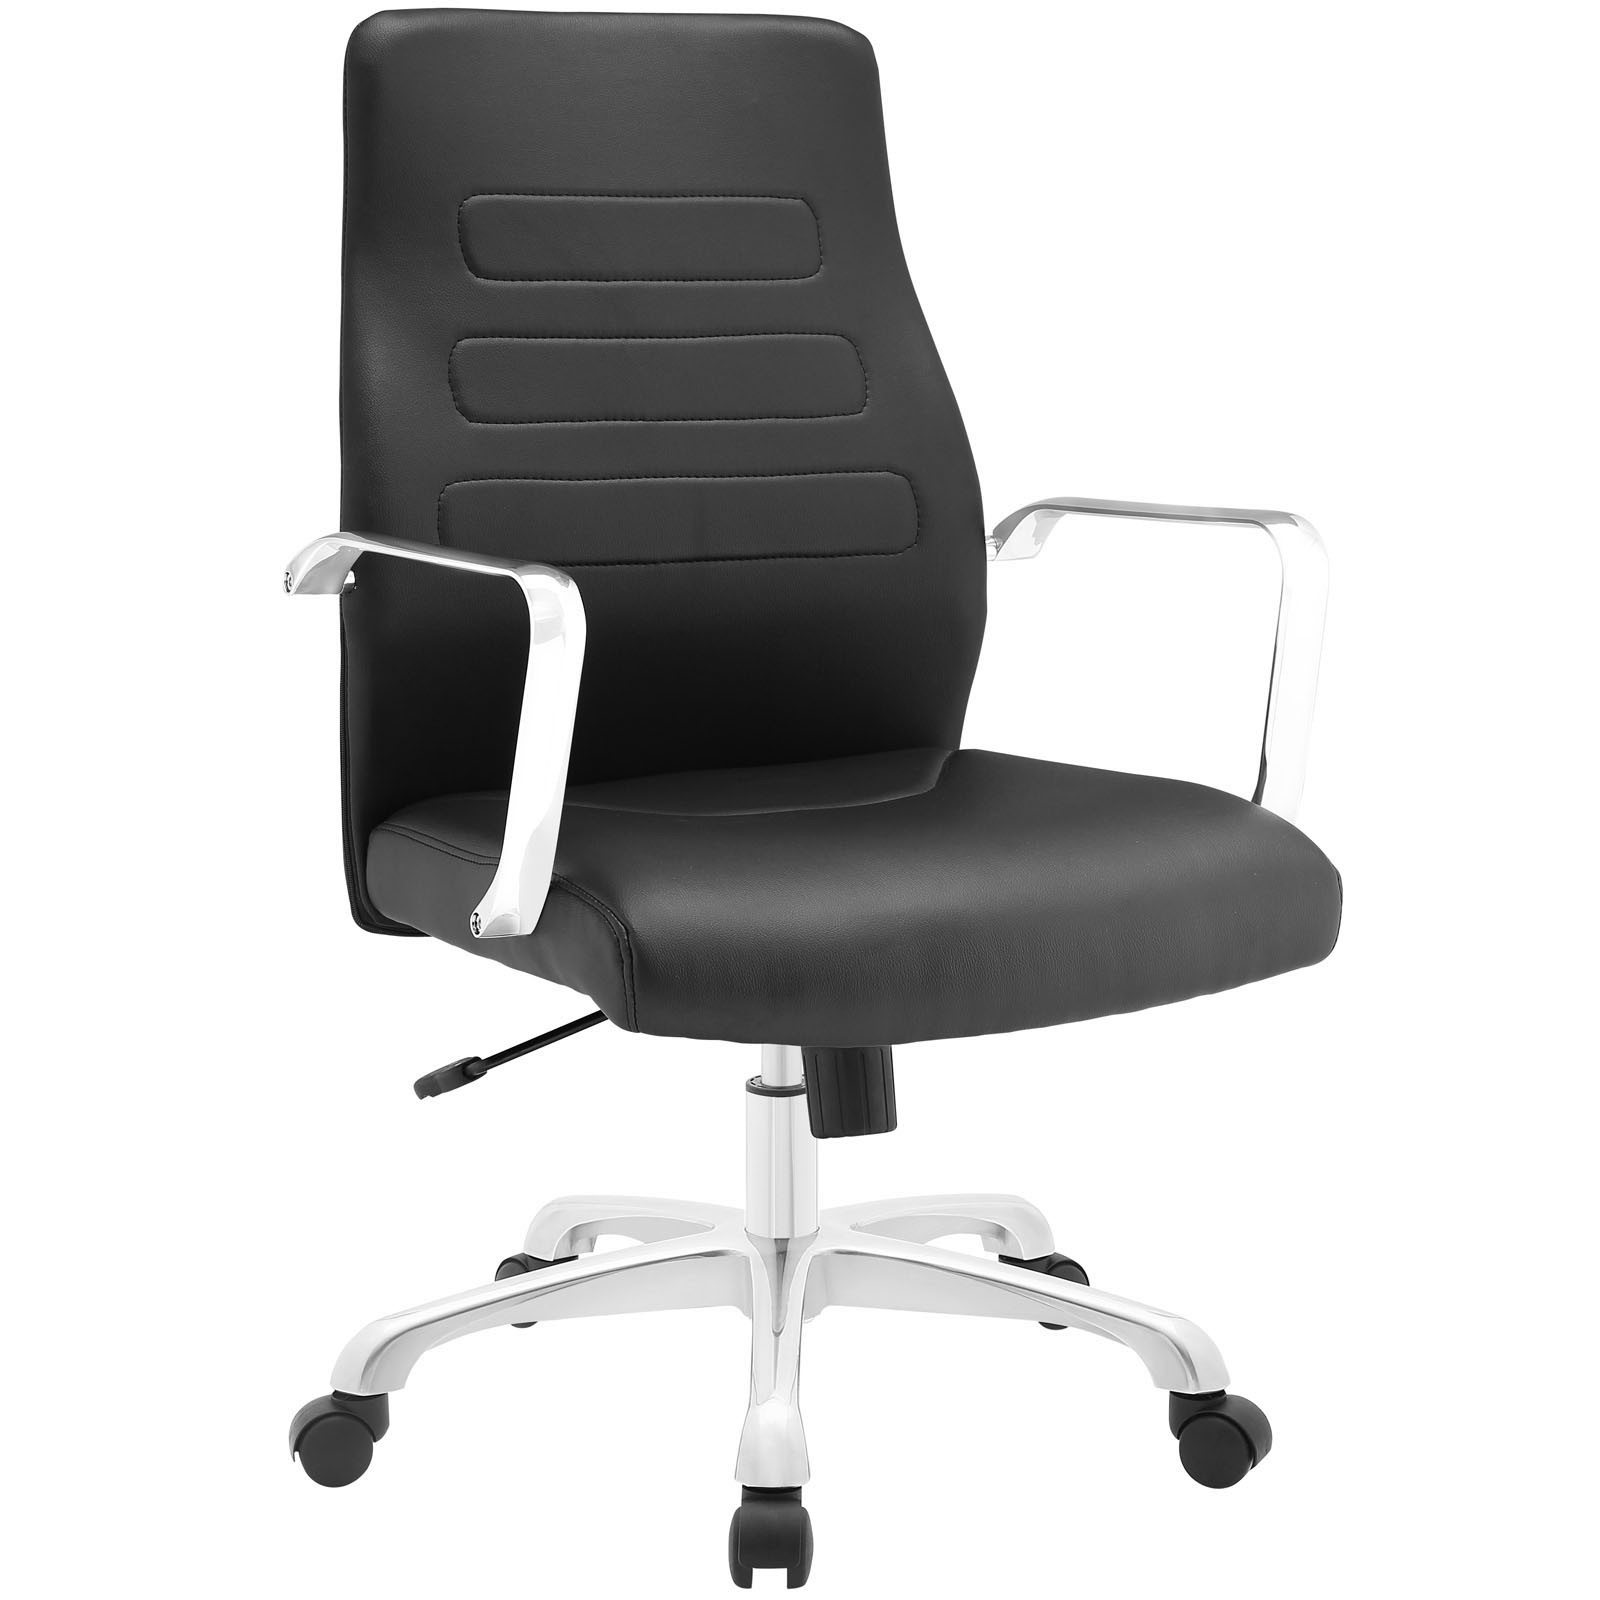 Cheap Office Chairs Cheap Chair Discount Chairs Office Furniture Chairs